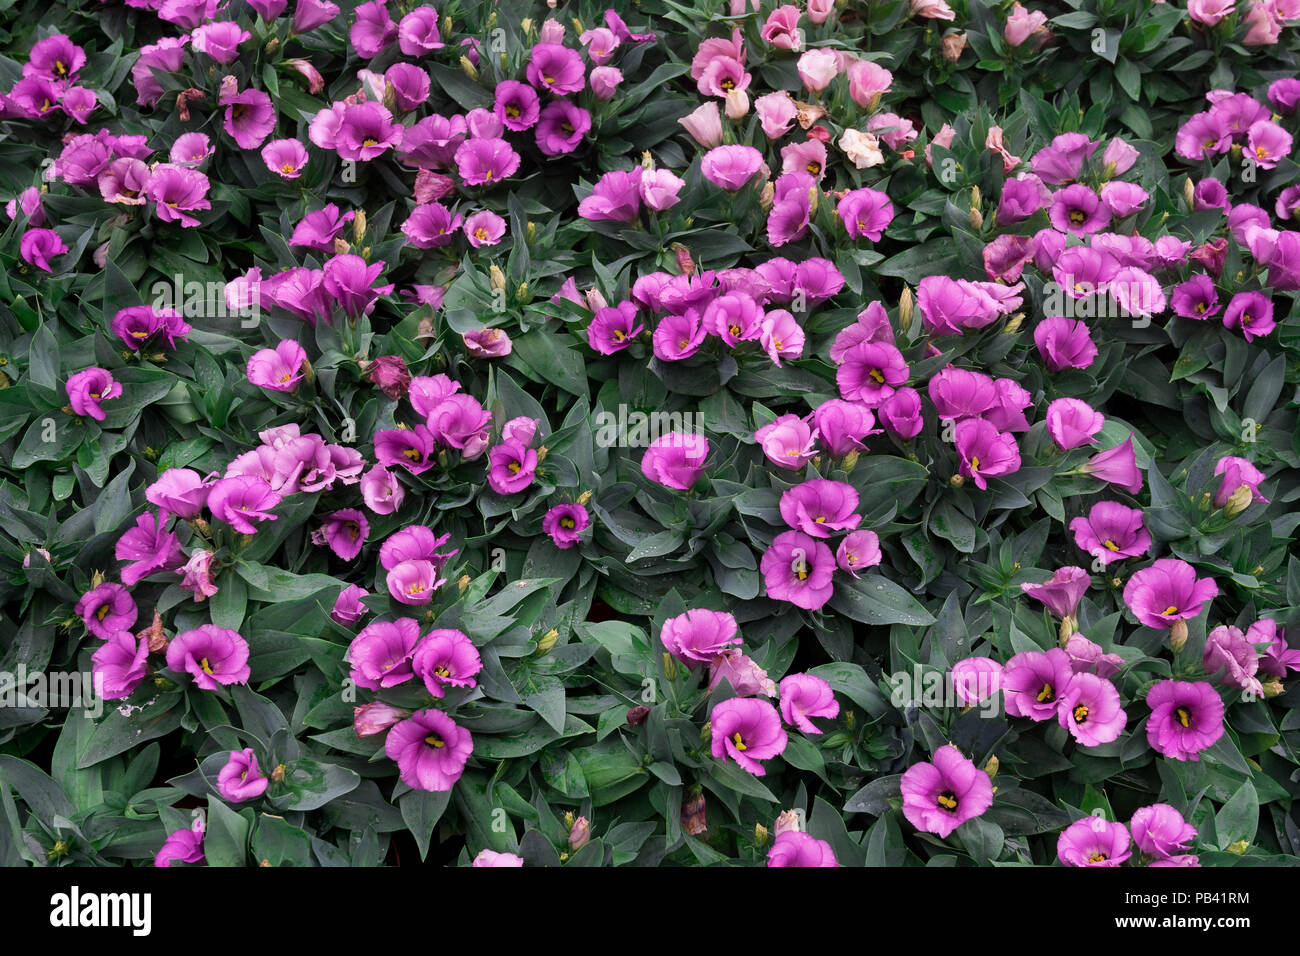 top view of Purple bloom Lisianthus flowers on green leafs background - Stock Image